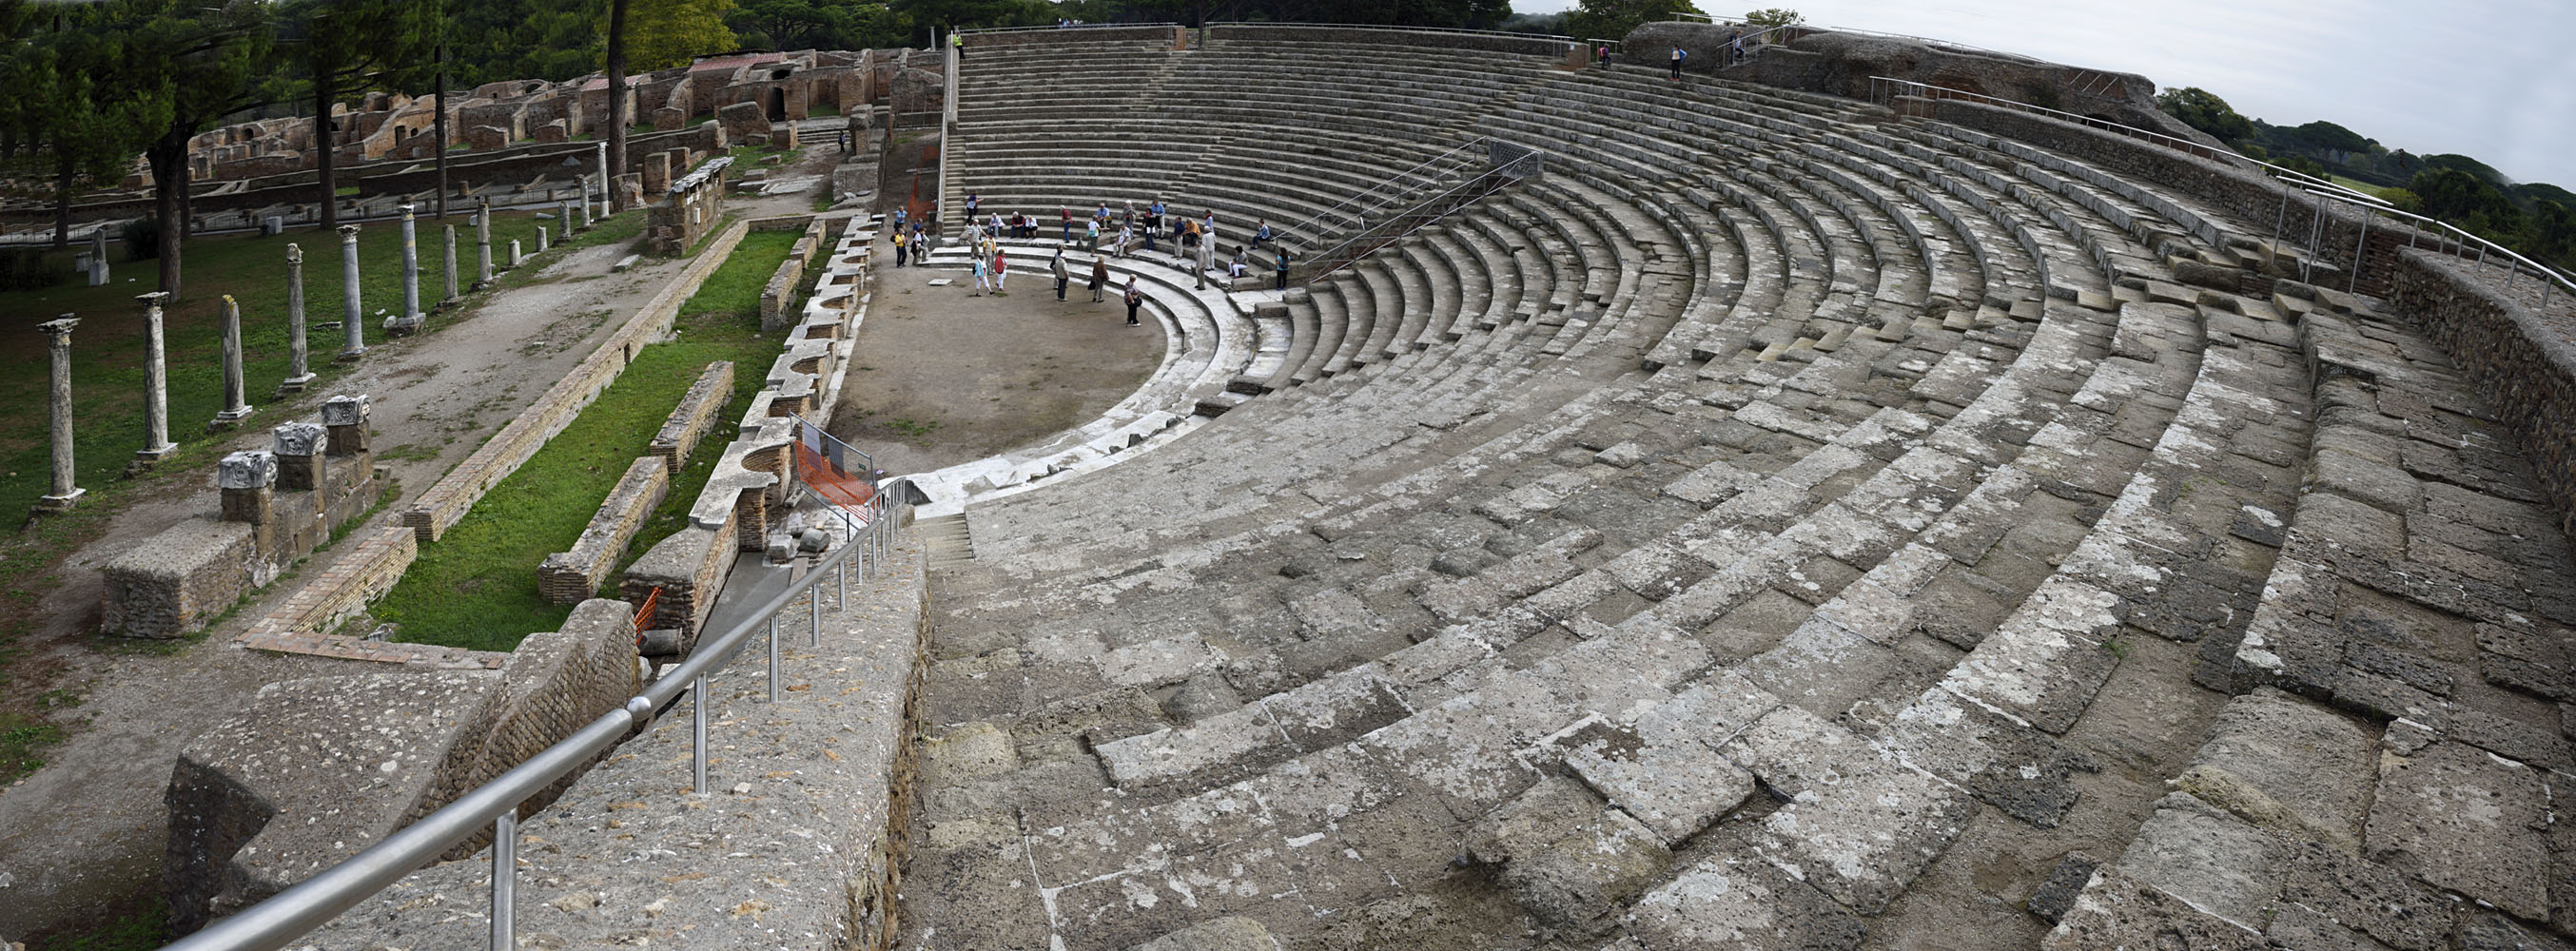 Theatre. Built in 18/17 BCE by M. Agrippa, rebuilt by Commodus and later by Septimius Severus and Caracalla. Ostia, Archaeological site (II, VII, 2)